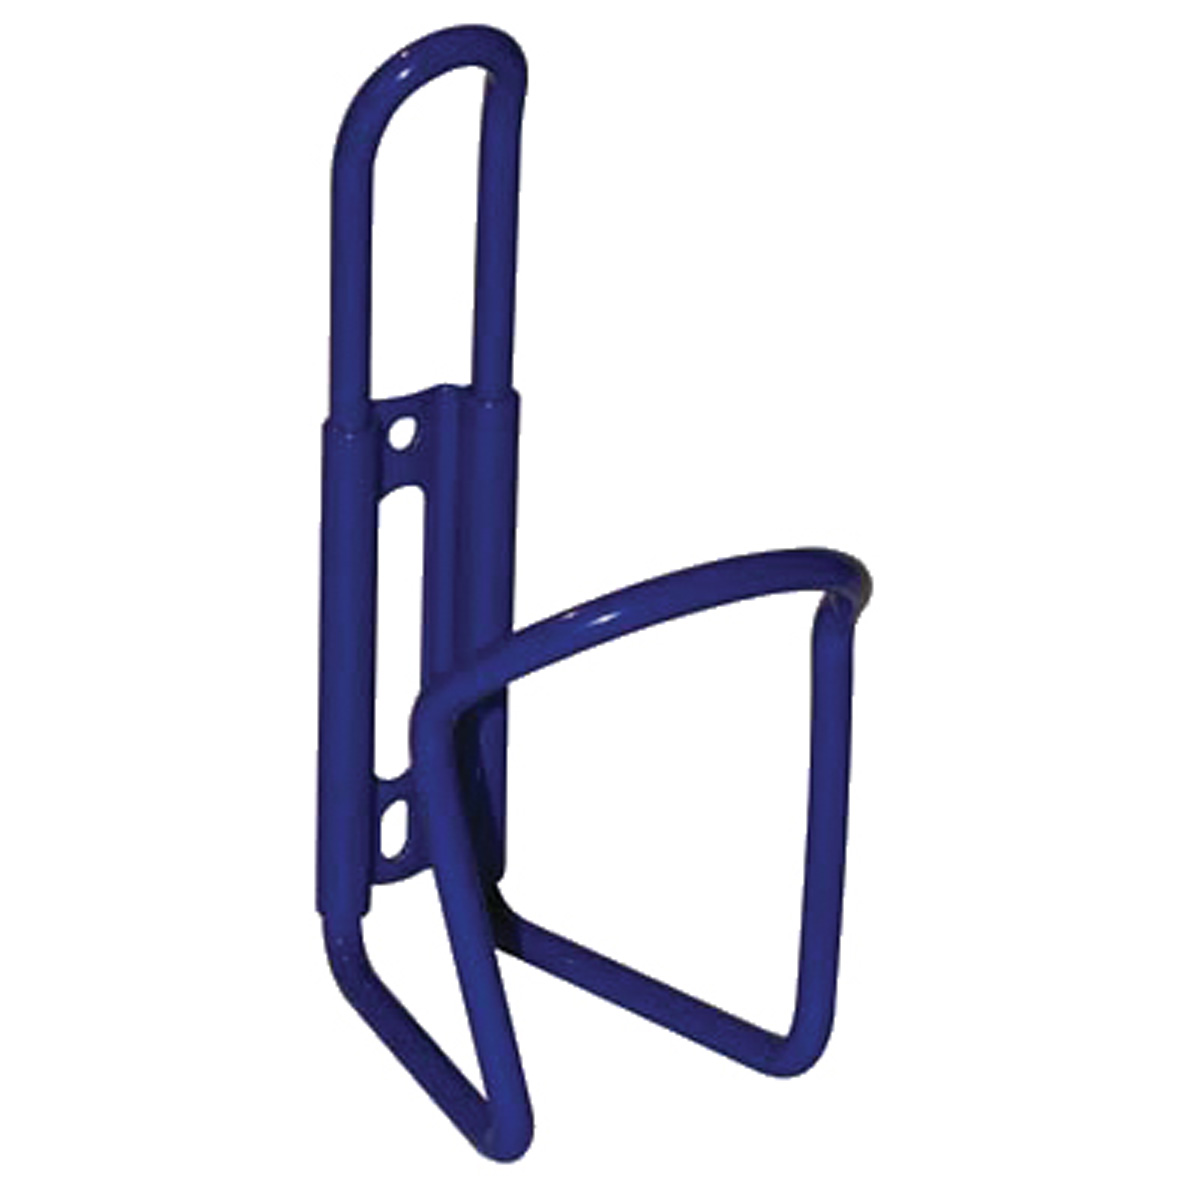 Summit Powder Coat Bicycle Water Bottle Cage